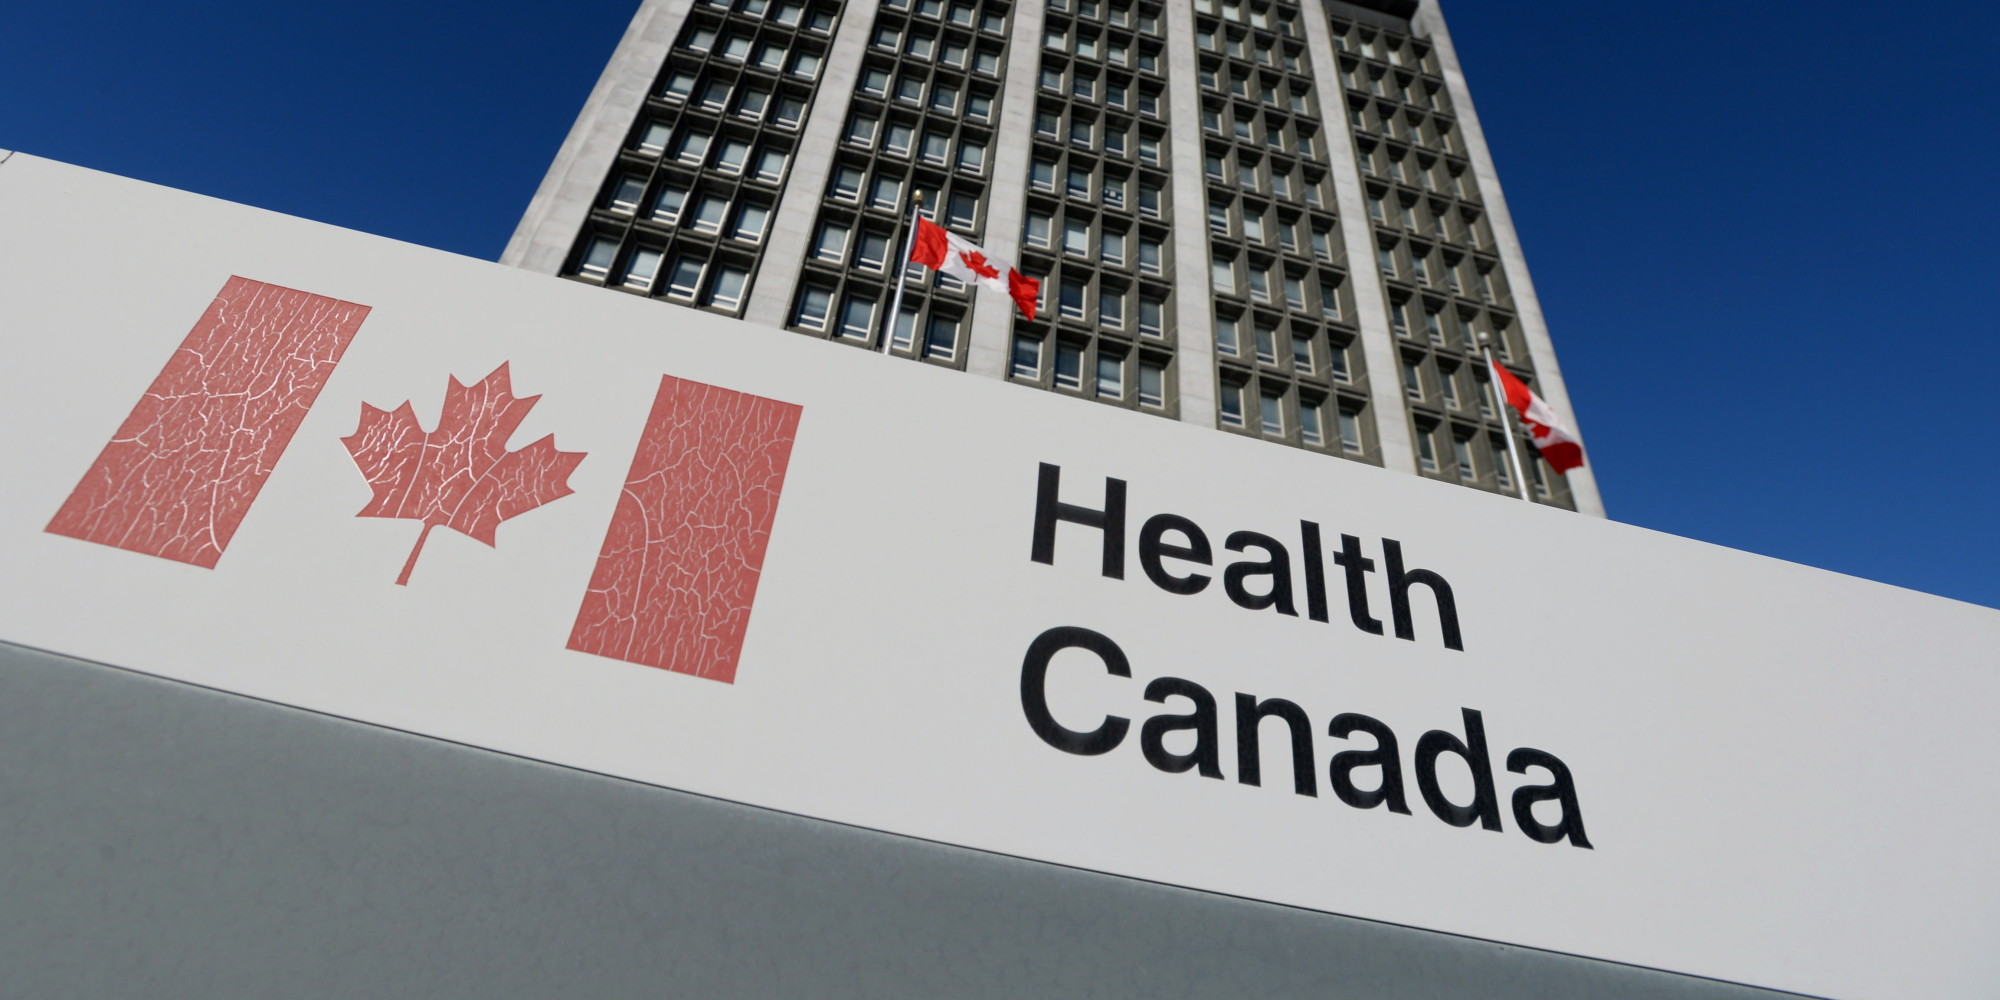 Health Canada prove they are useless - Cannabis Life Network